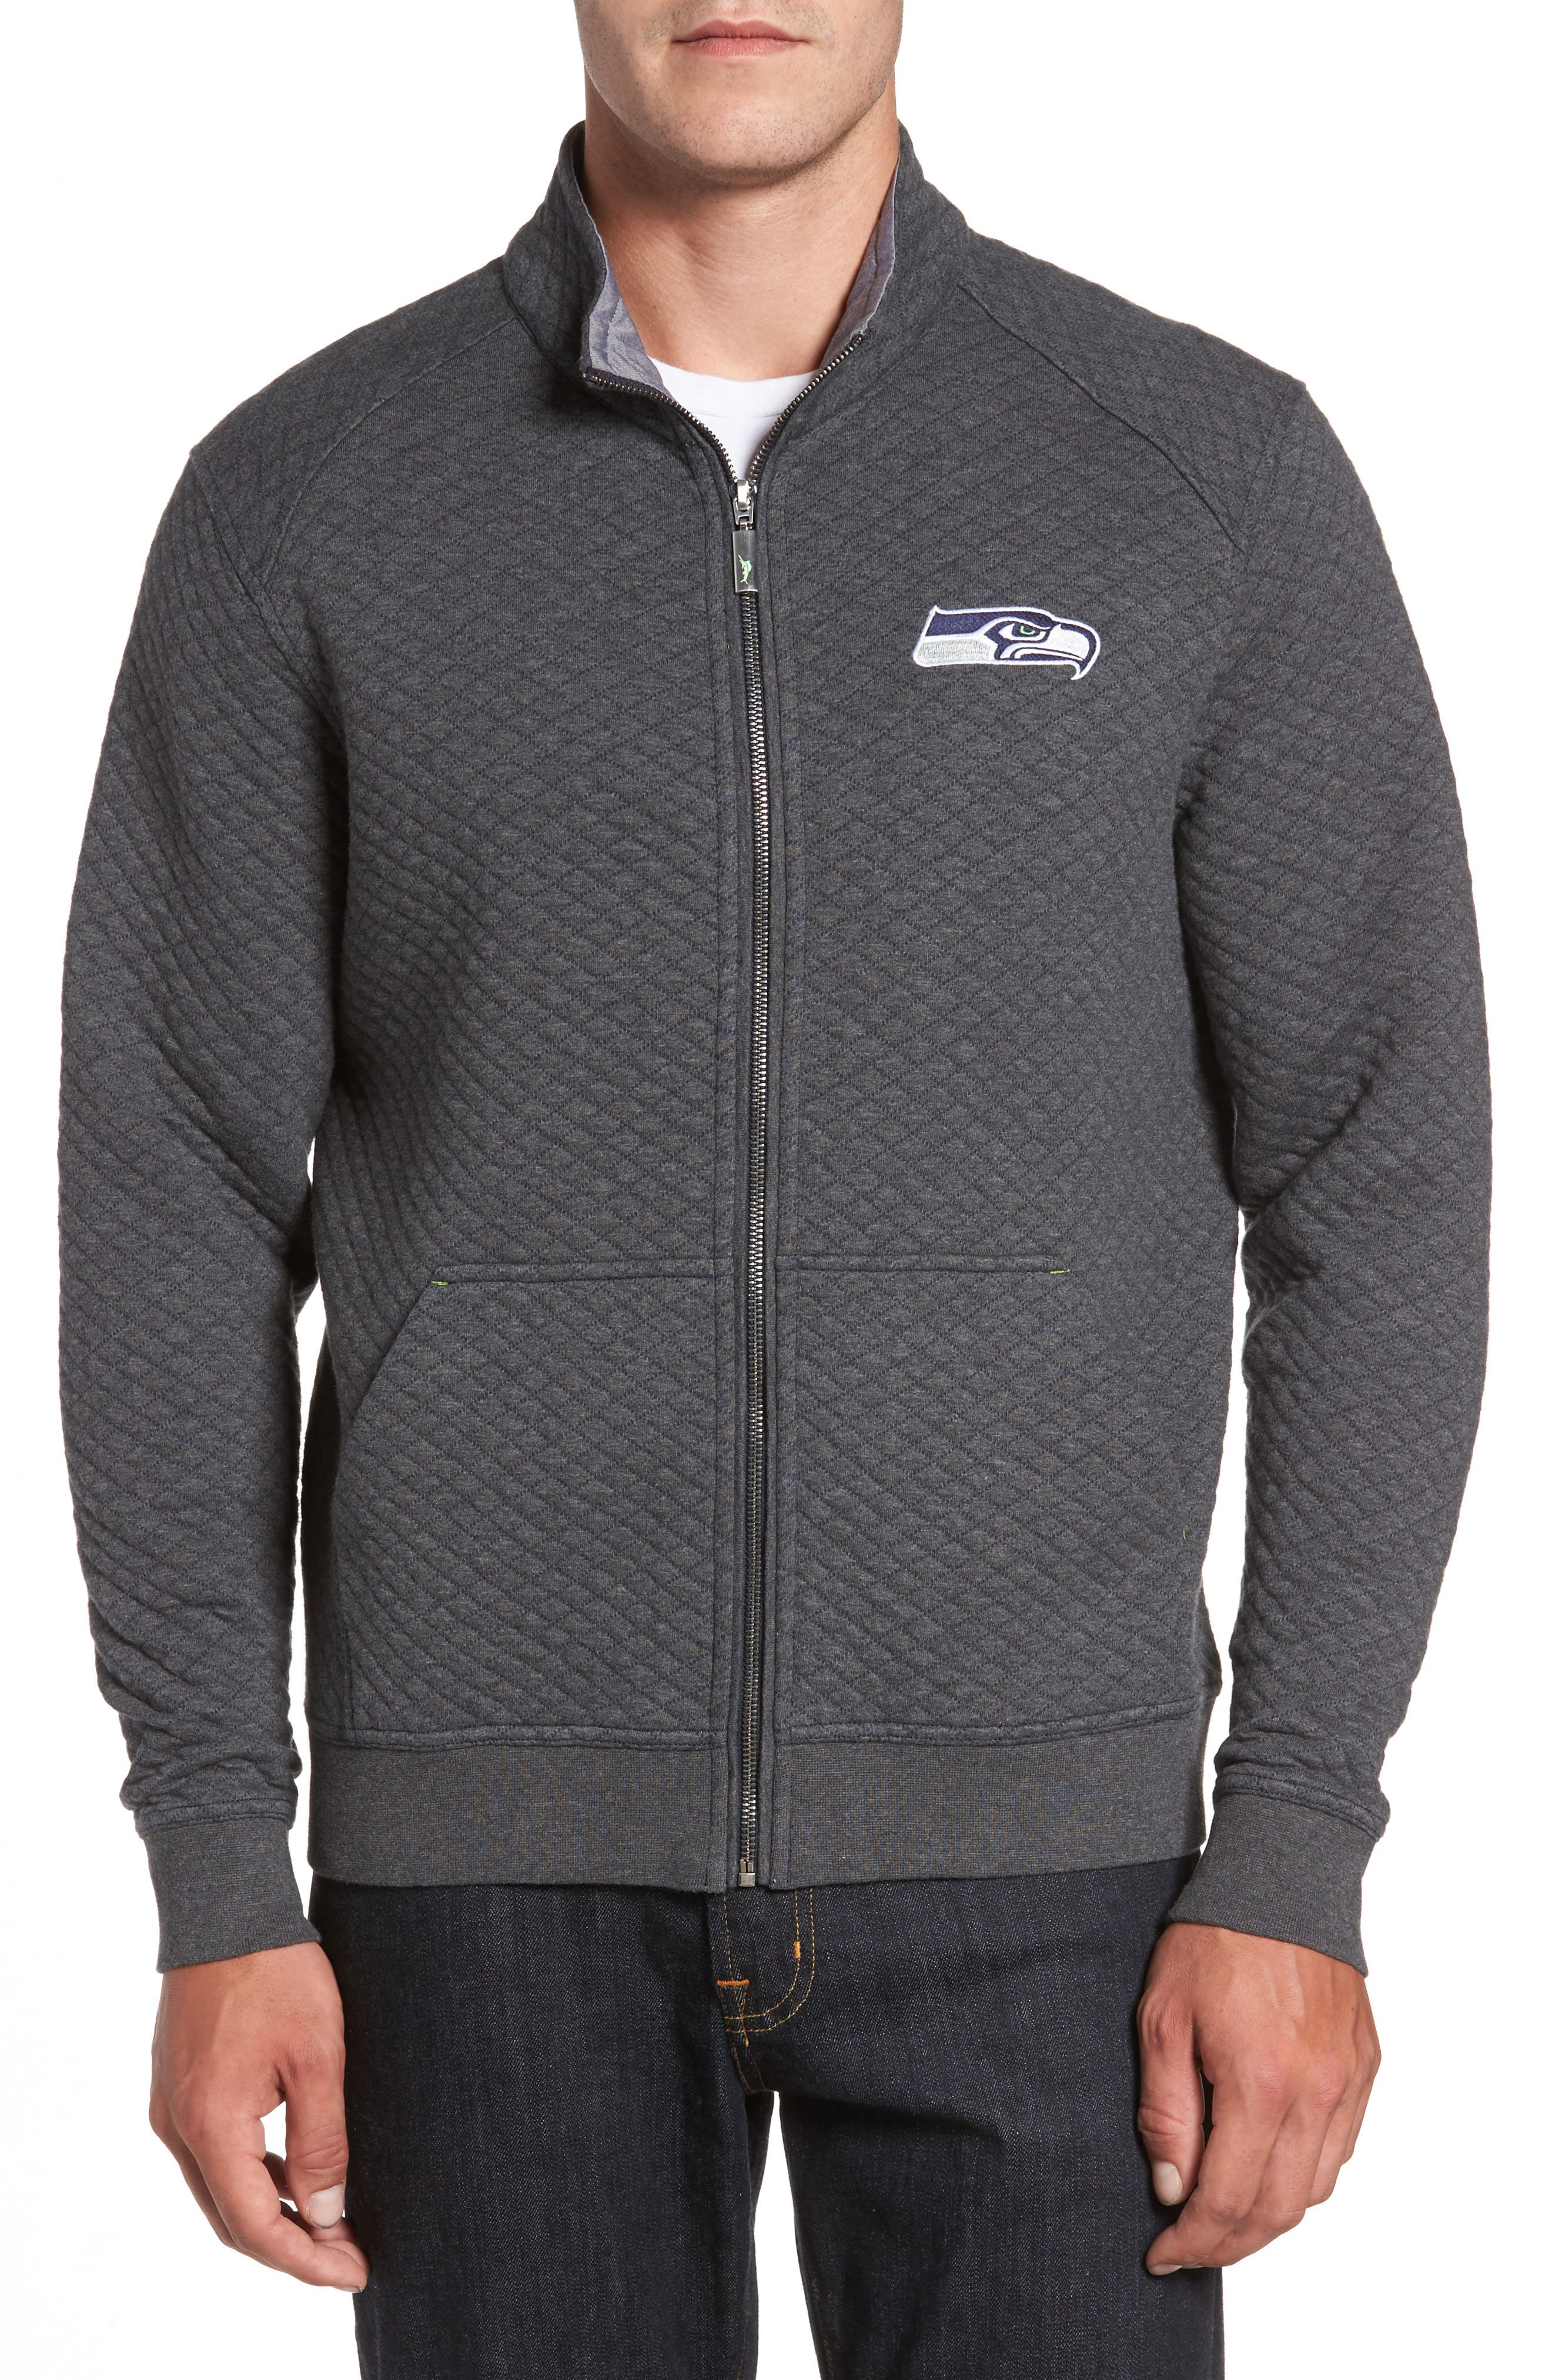 Alternate Image 1 Selected - Tommy Bahama NFL Quiltessential Full Zip Sweatshirt